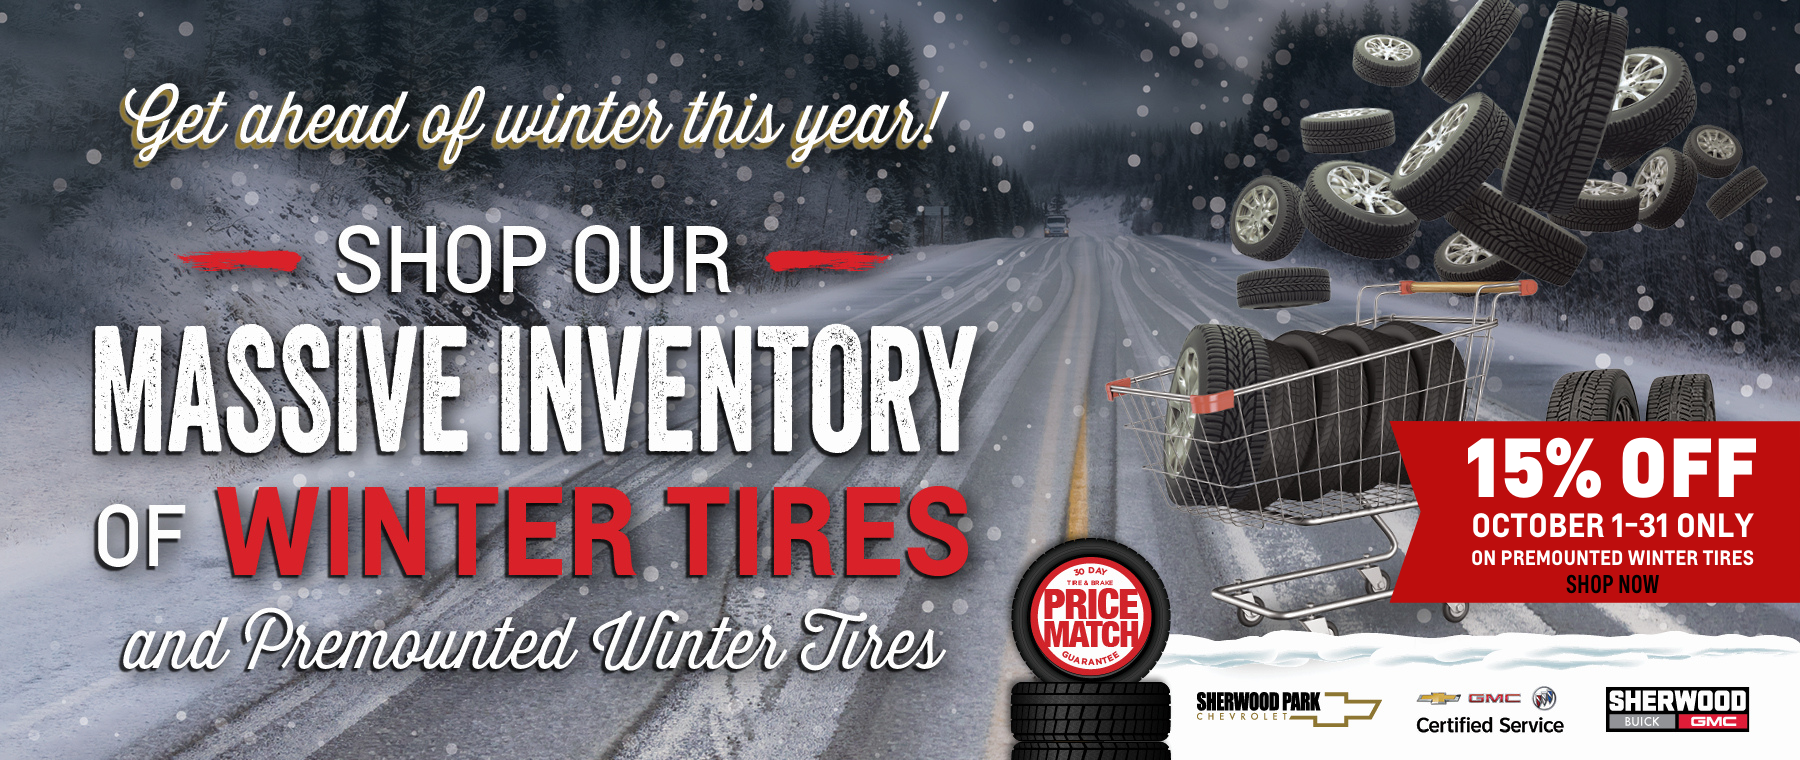 Winter Tire Sale - SBG_SPC 15% Off